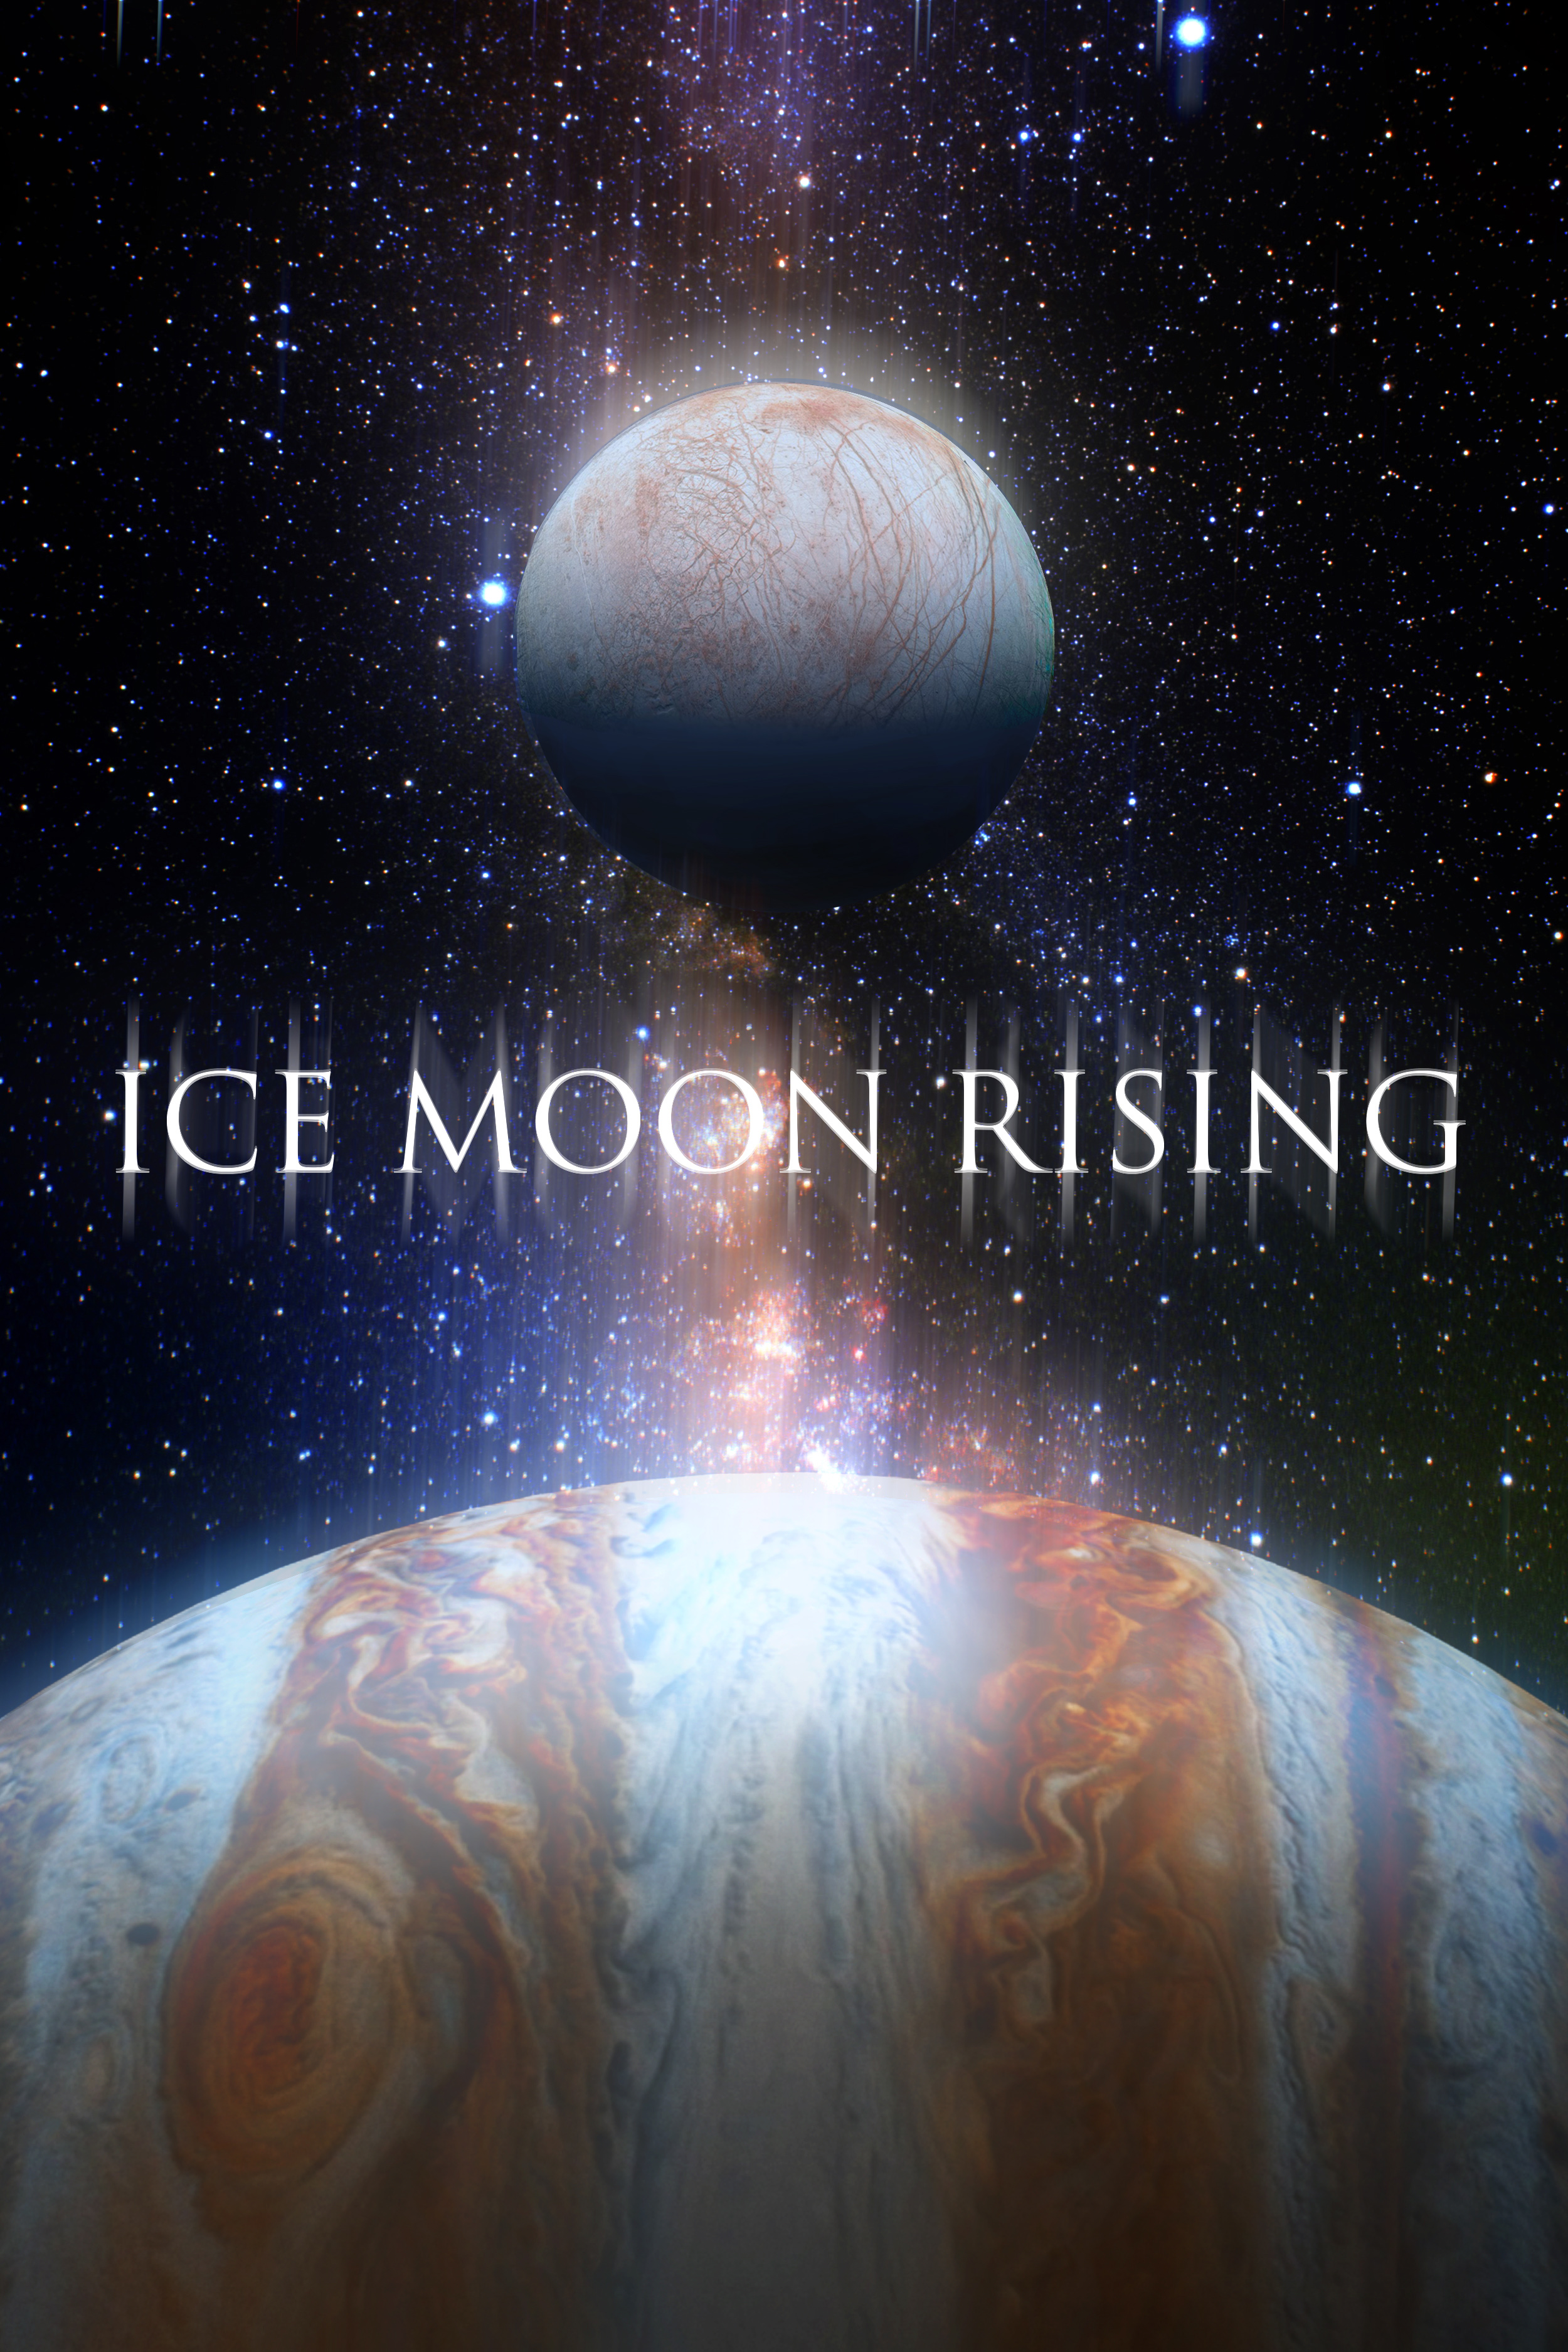 ICE MOON RISING